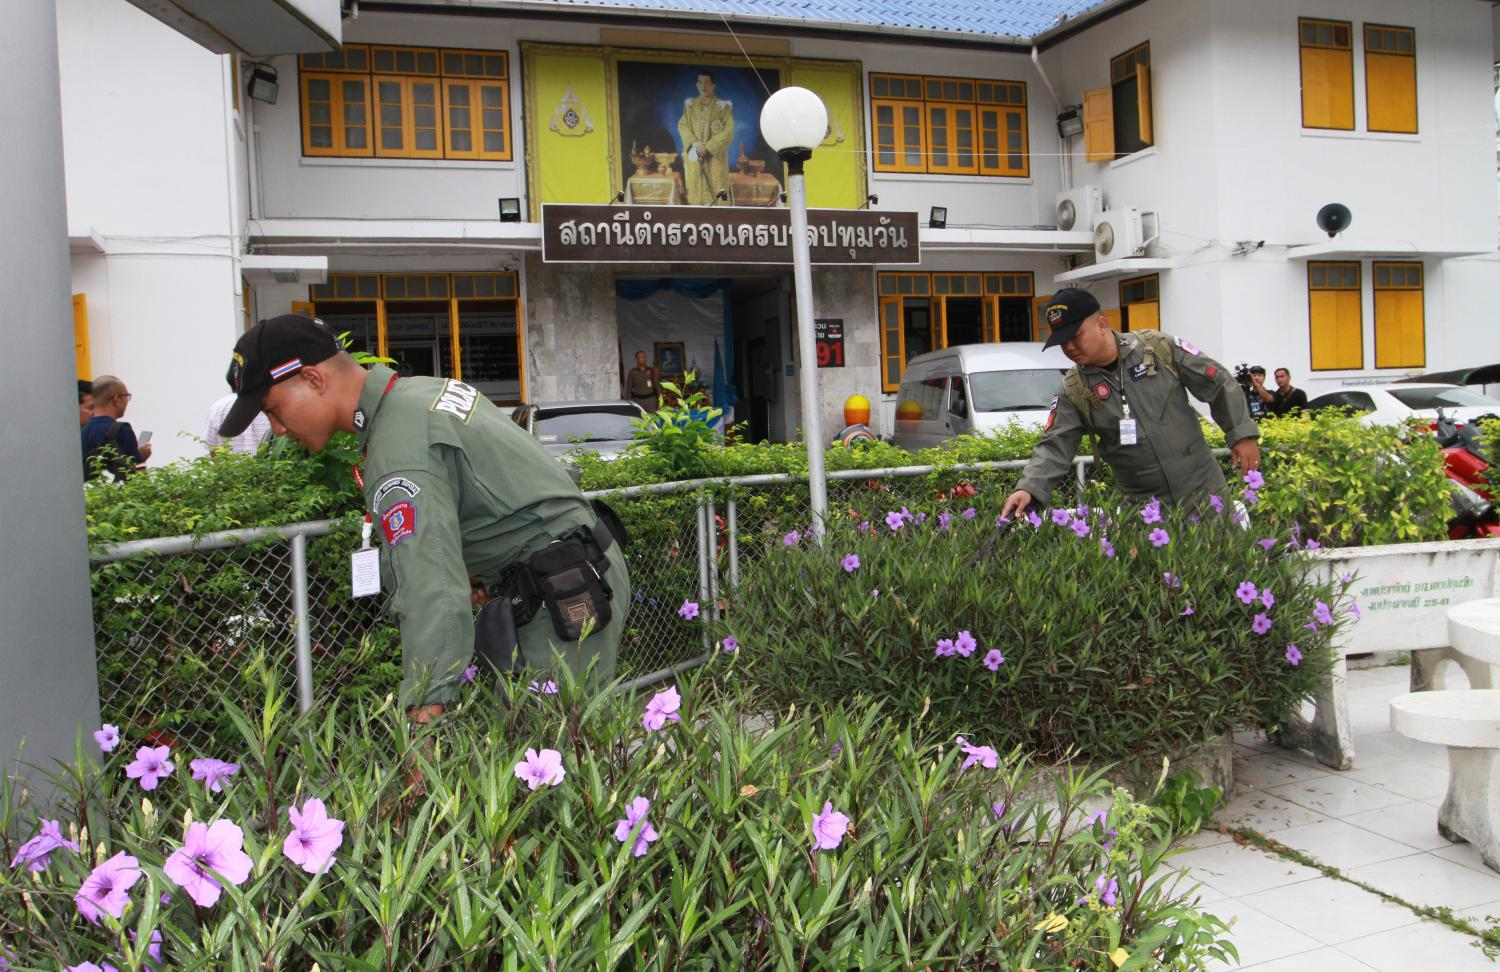 An explosive ordnance disposal team combs an area on Wednesday in front of Pathumwan police station where a suspect allegedly involved in the Aug 1 bomb blitz in Bangkok and Nonthaburi was being detained.Pawat Laopaisarntaksin